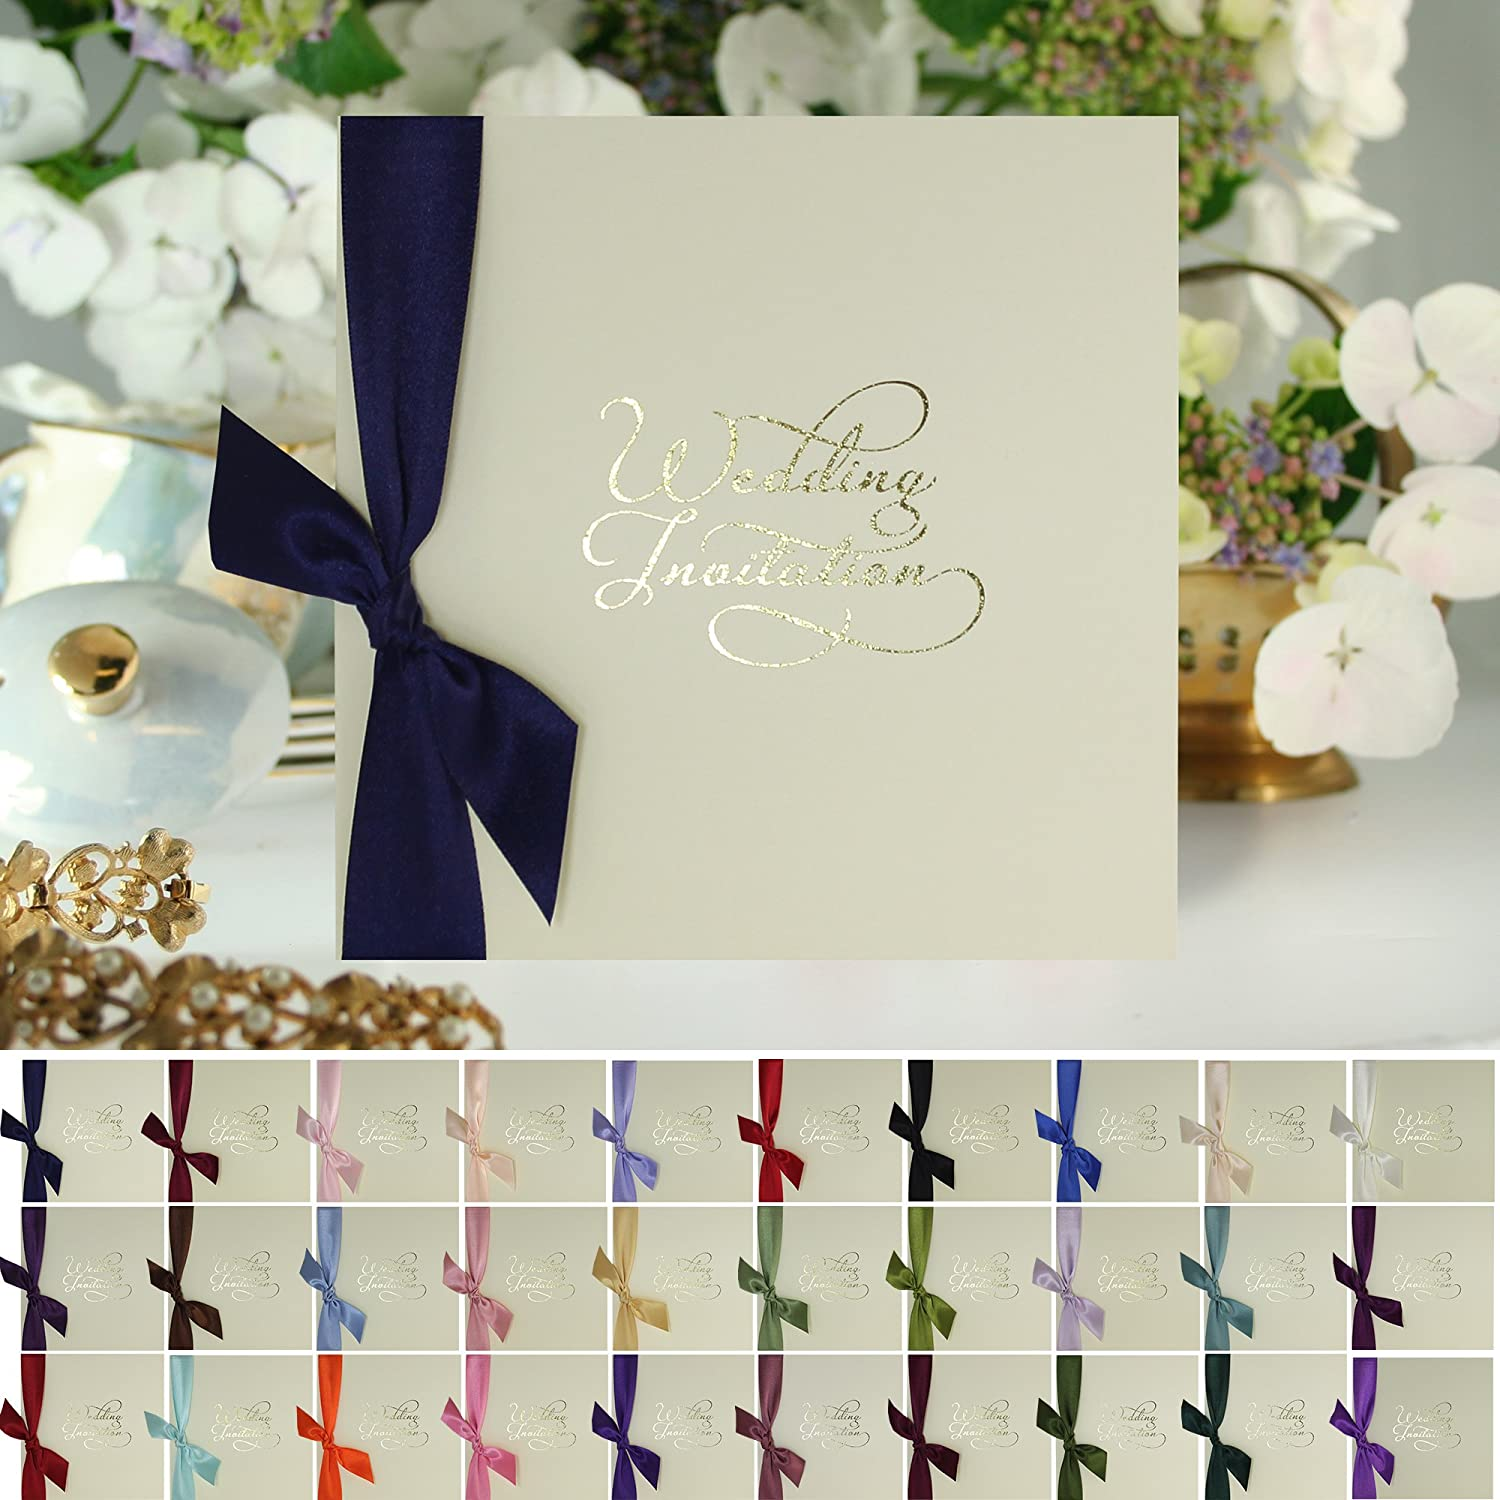 10 x Gold Script Personalised Wedding Invitations - Includes Envelopes +  FREE Draft and Choice of Ribbon Colour